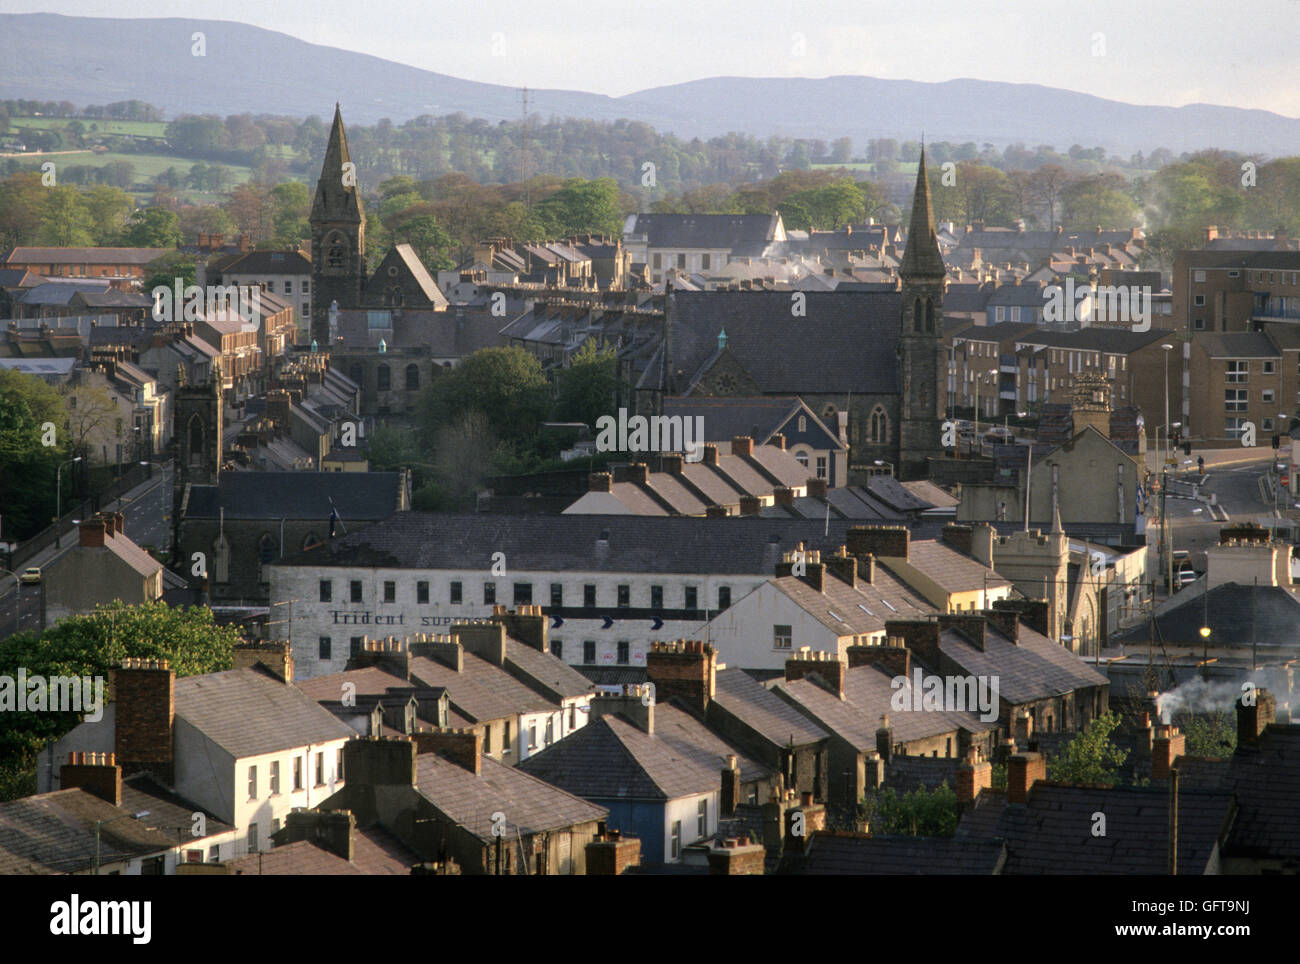 Derry Londonderry 1980s HOMER SYKES - Stock Image